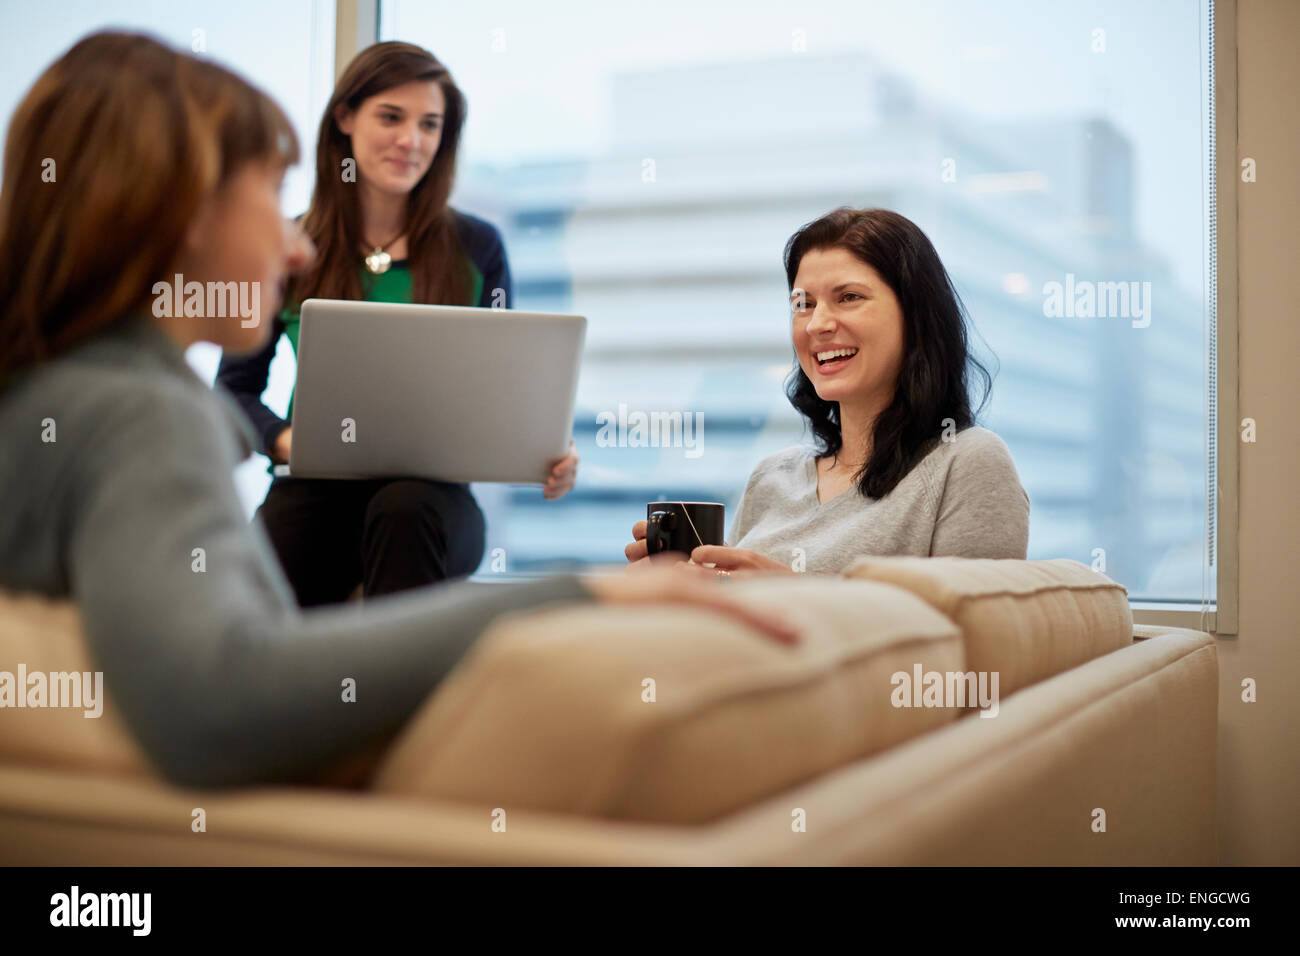 Three businesswomen by a window in an office, one holding a laptop. - Stock Image